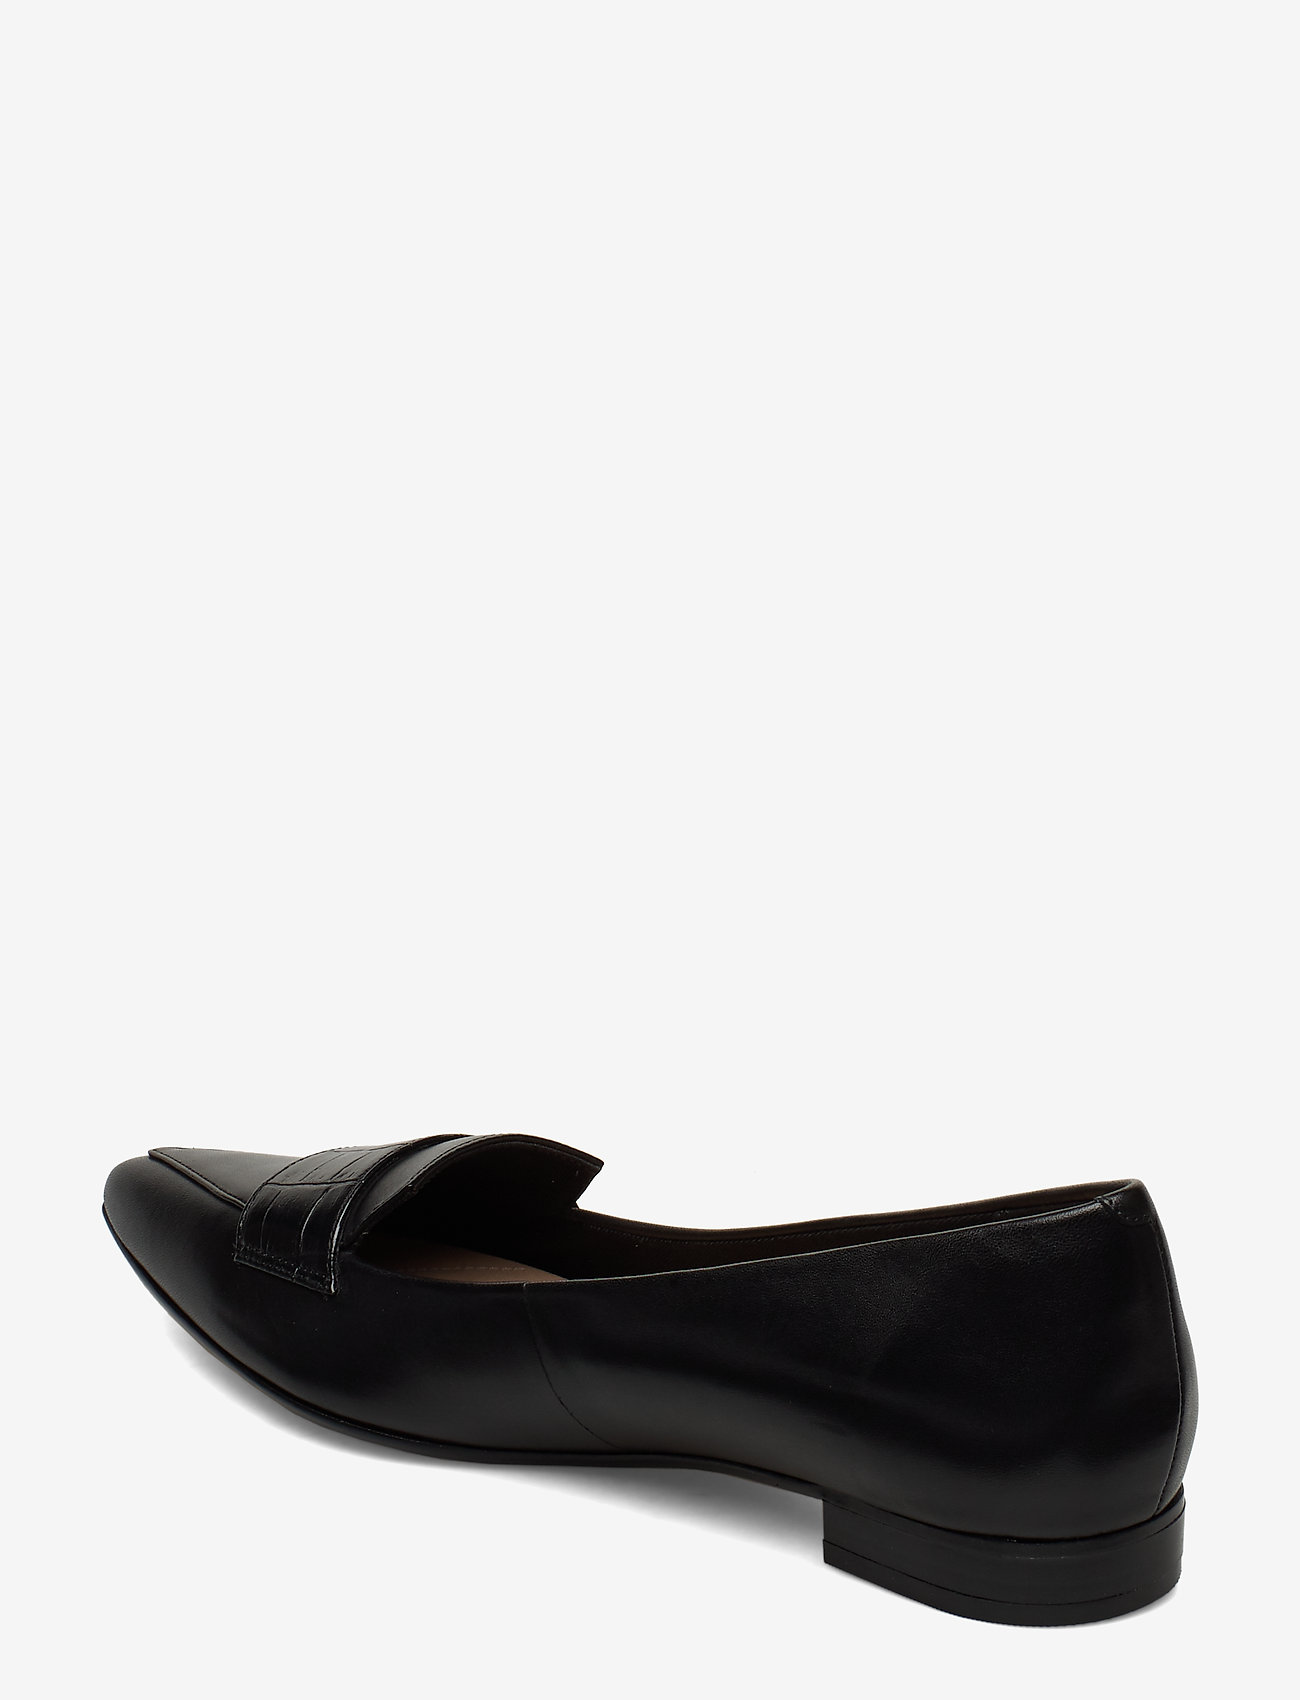 Laina15 Loafer (Black Combi) - Clarks